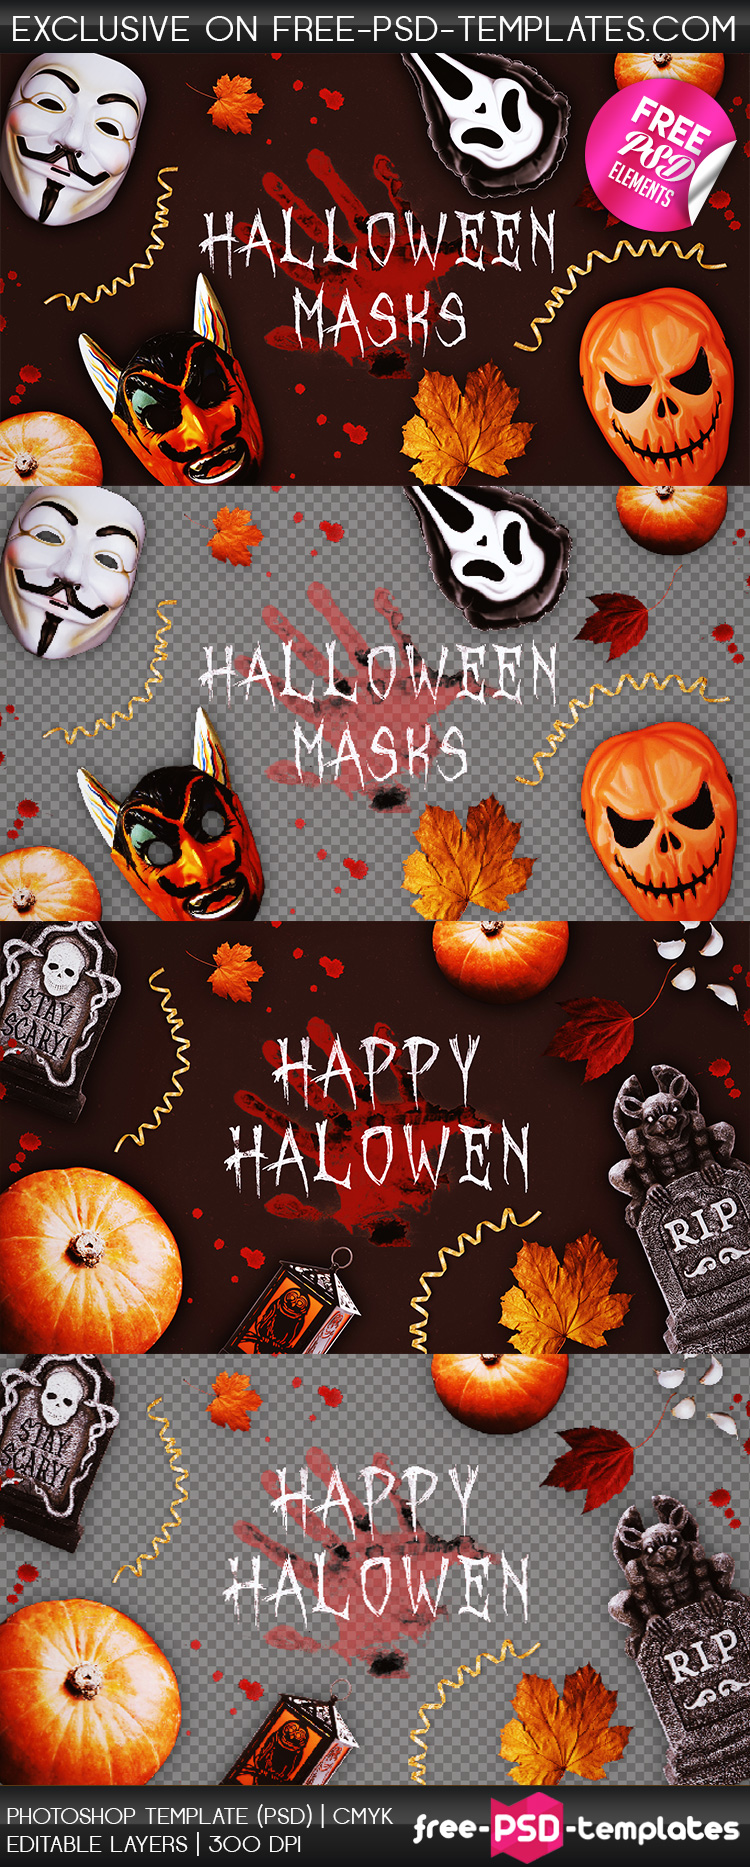 preview_free_transparated_halloween_elements_in_psd